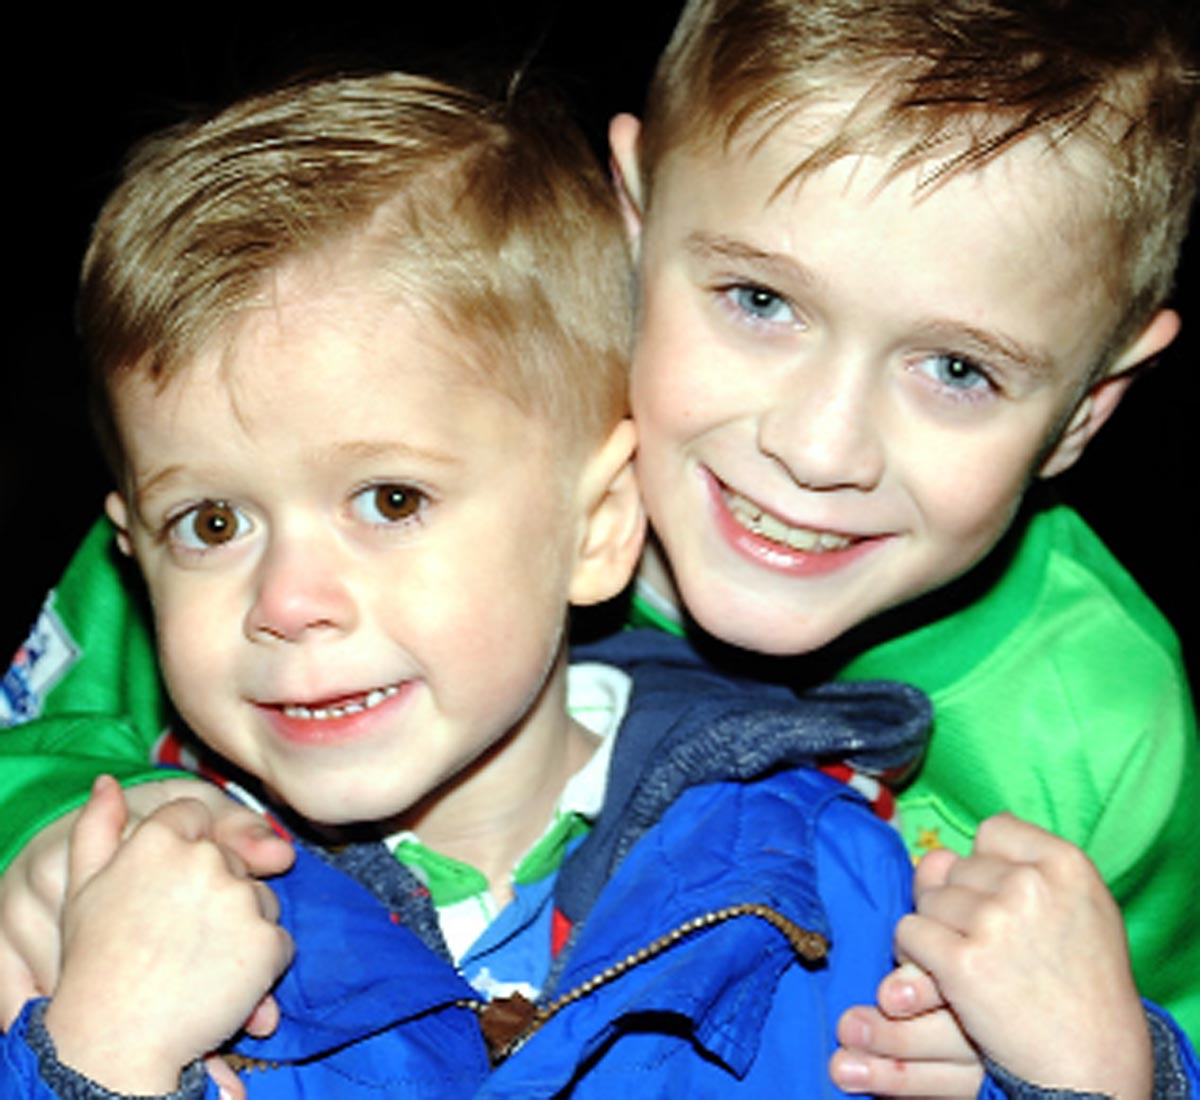 Noah McGibbon, eight, and three-year-old brother Jayden